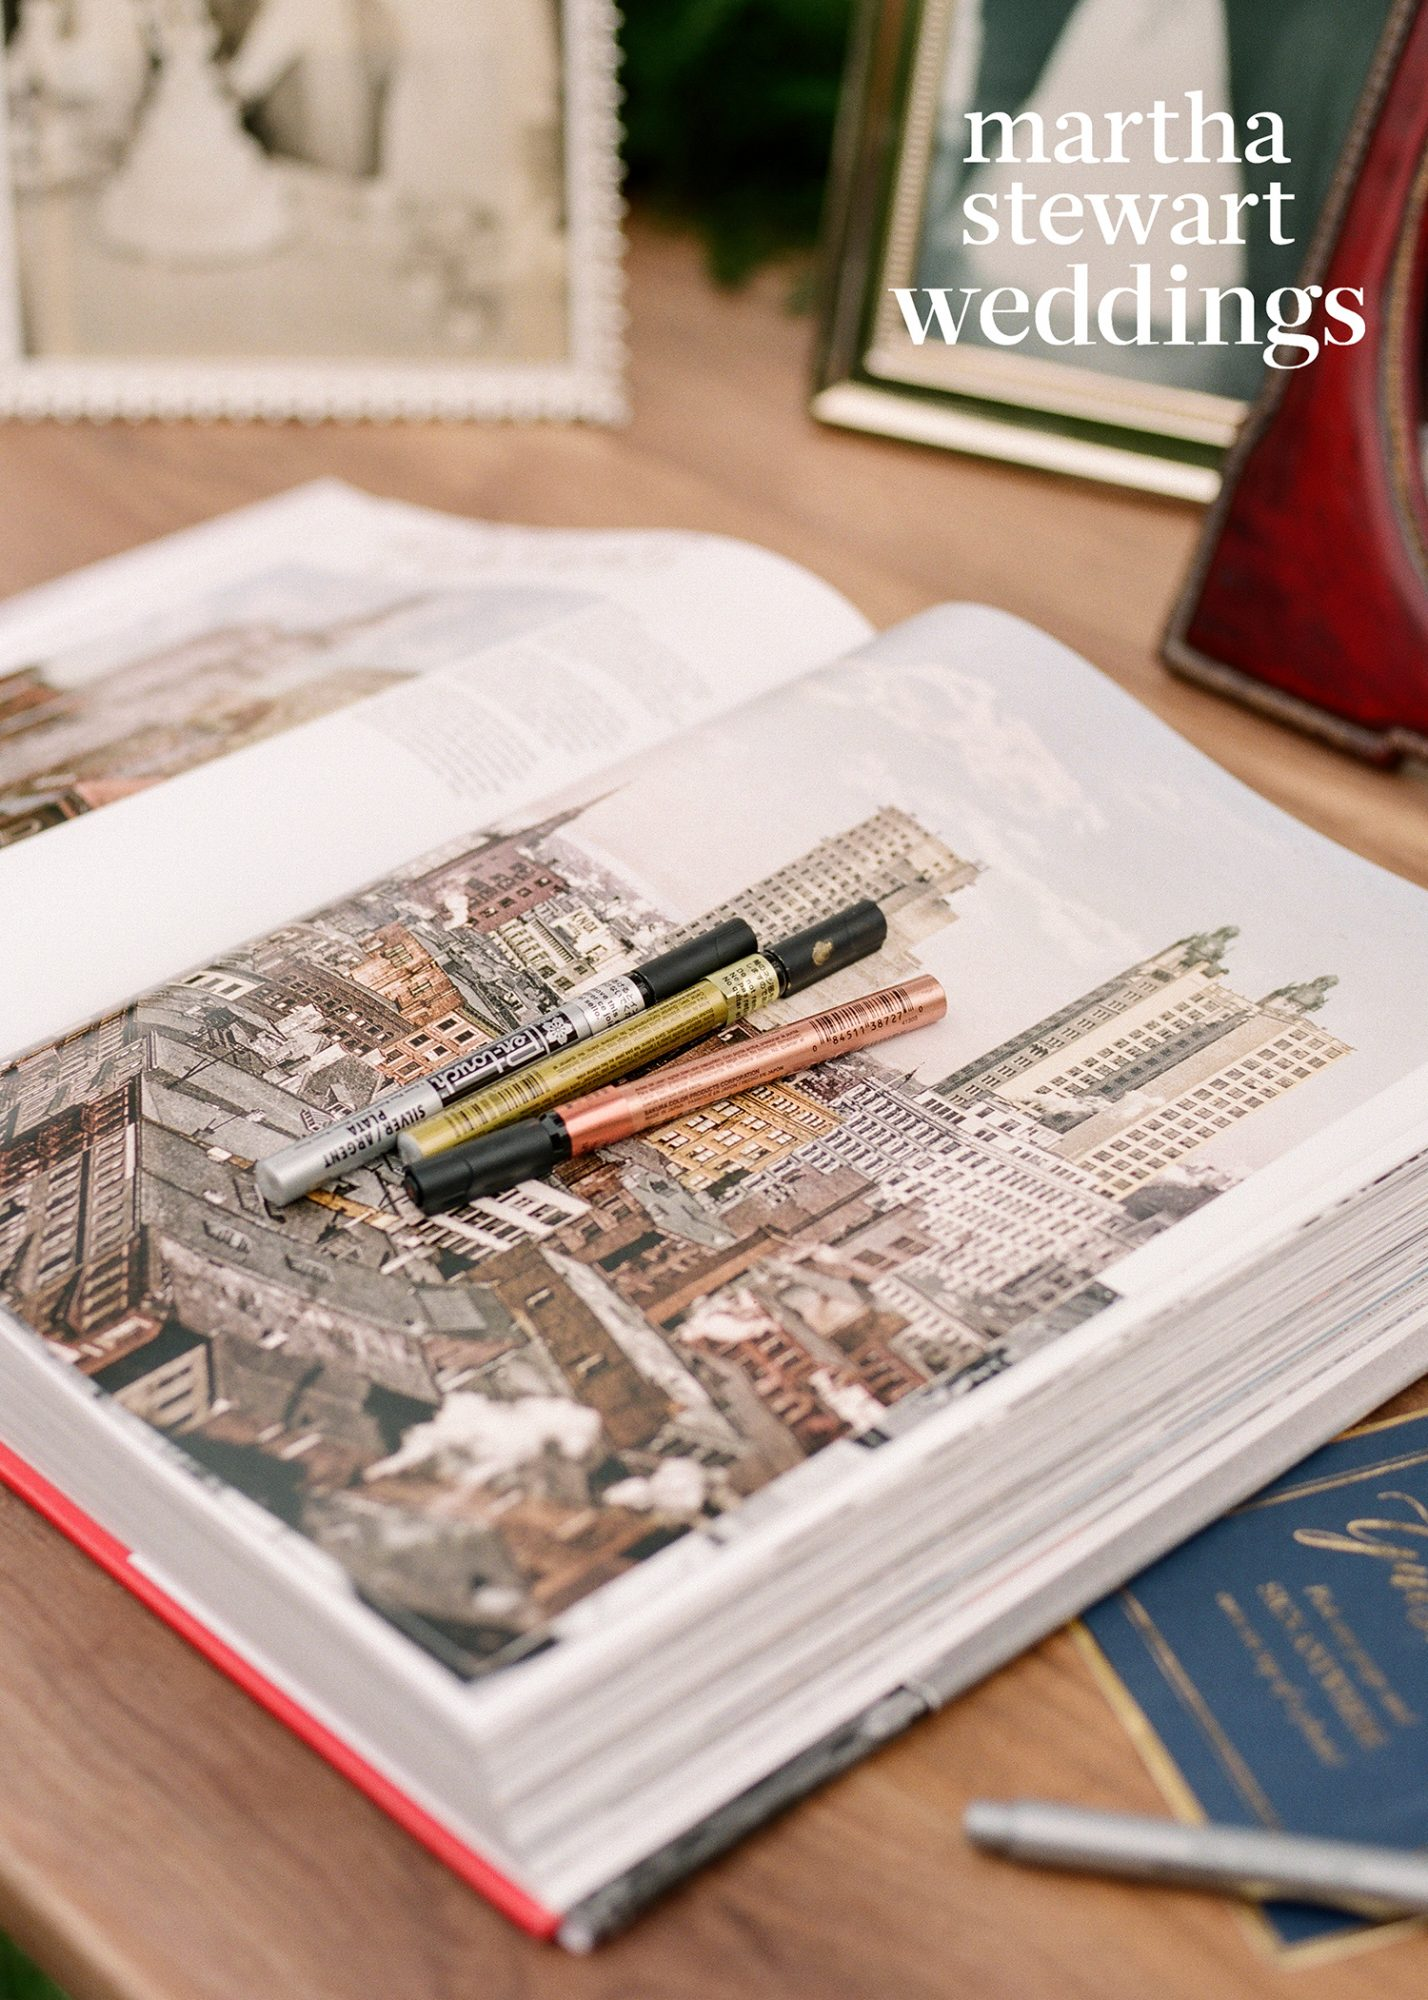 At actress Abby Elliott's wedding to her husband, Bill Kennedy, attendees wrote greetings in a book about New York City.